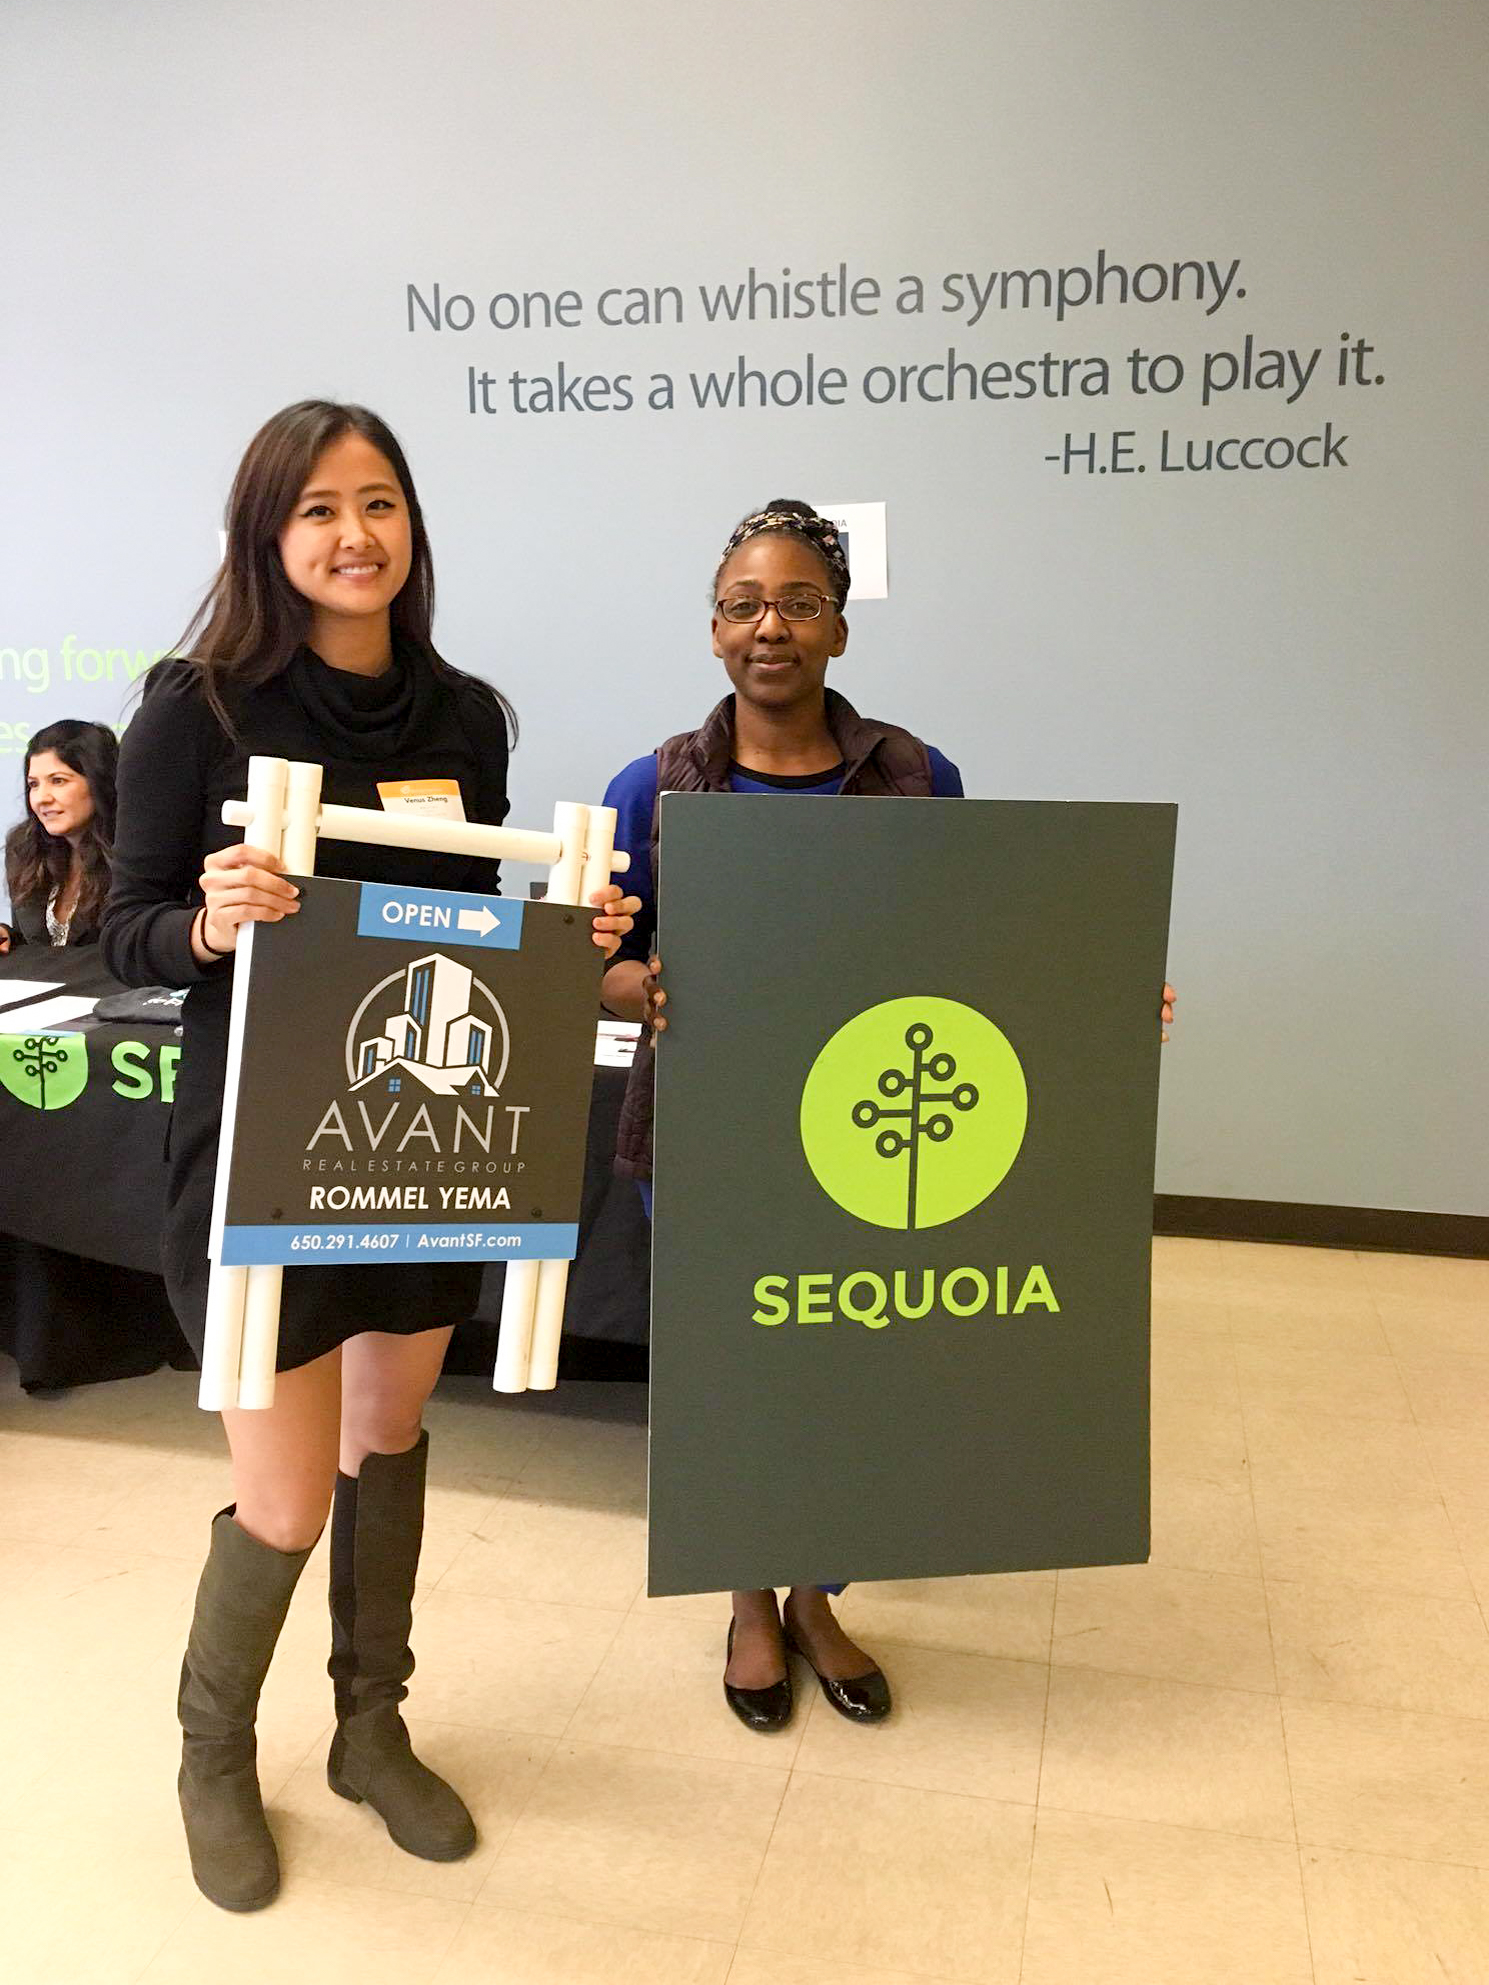 Venus Zheng taking picture with Sequoia at Energy Recovery's Lifestyle Event